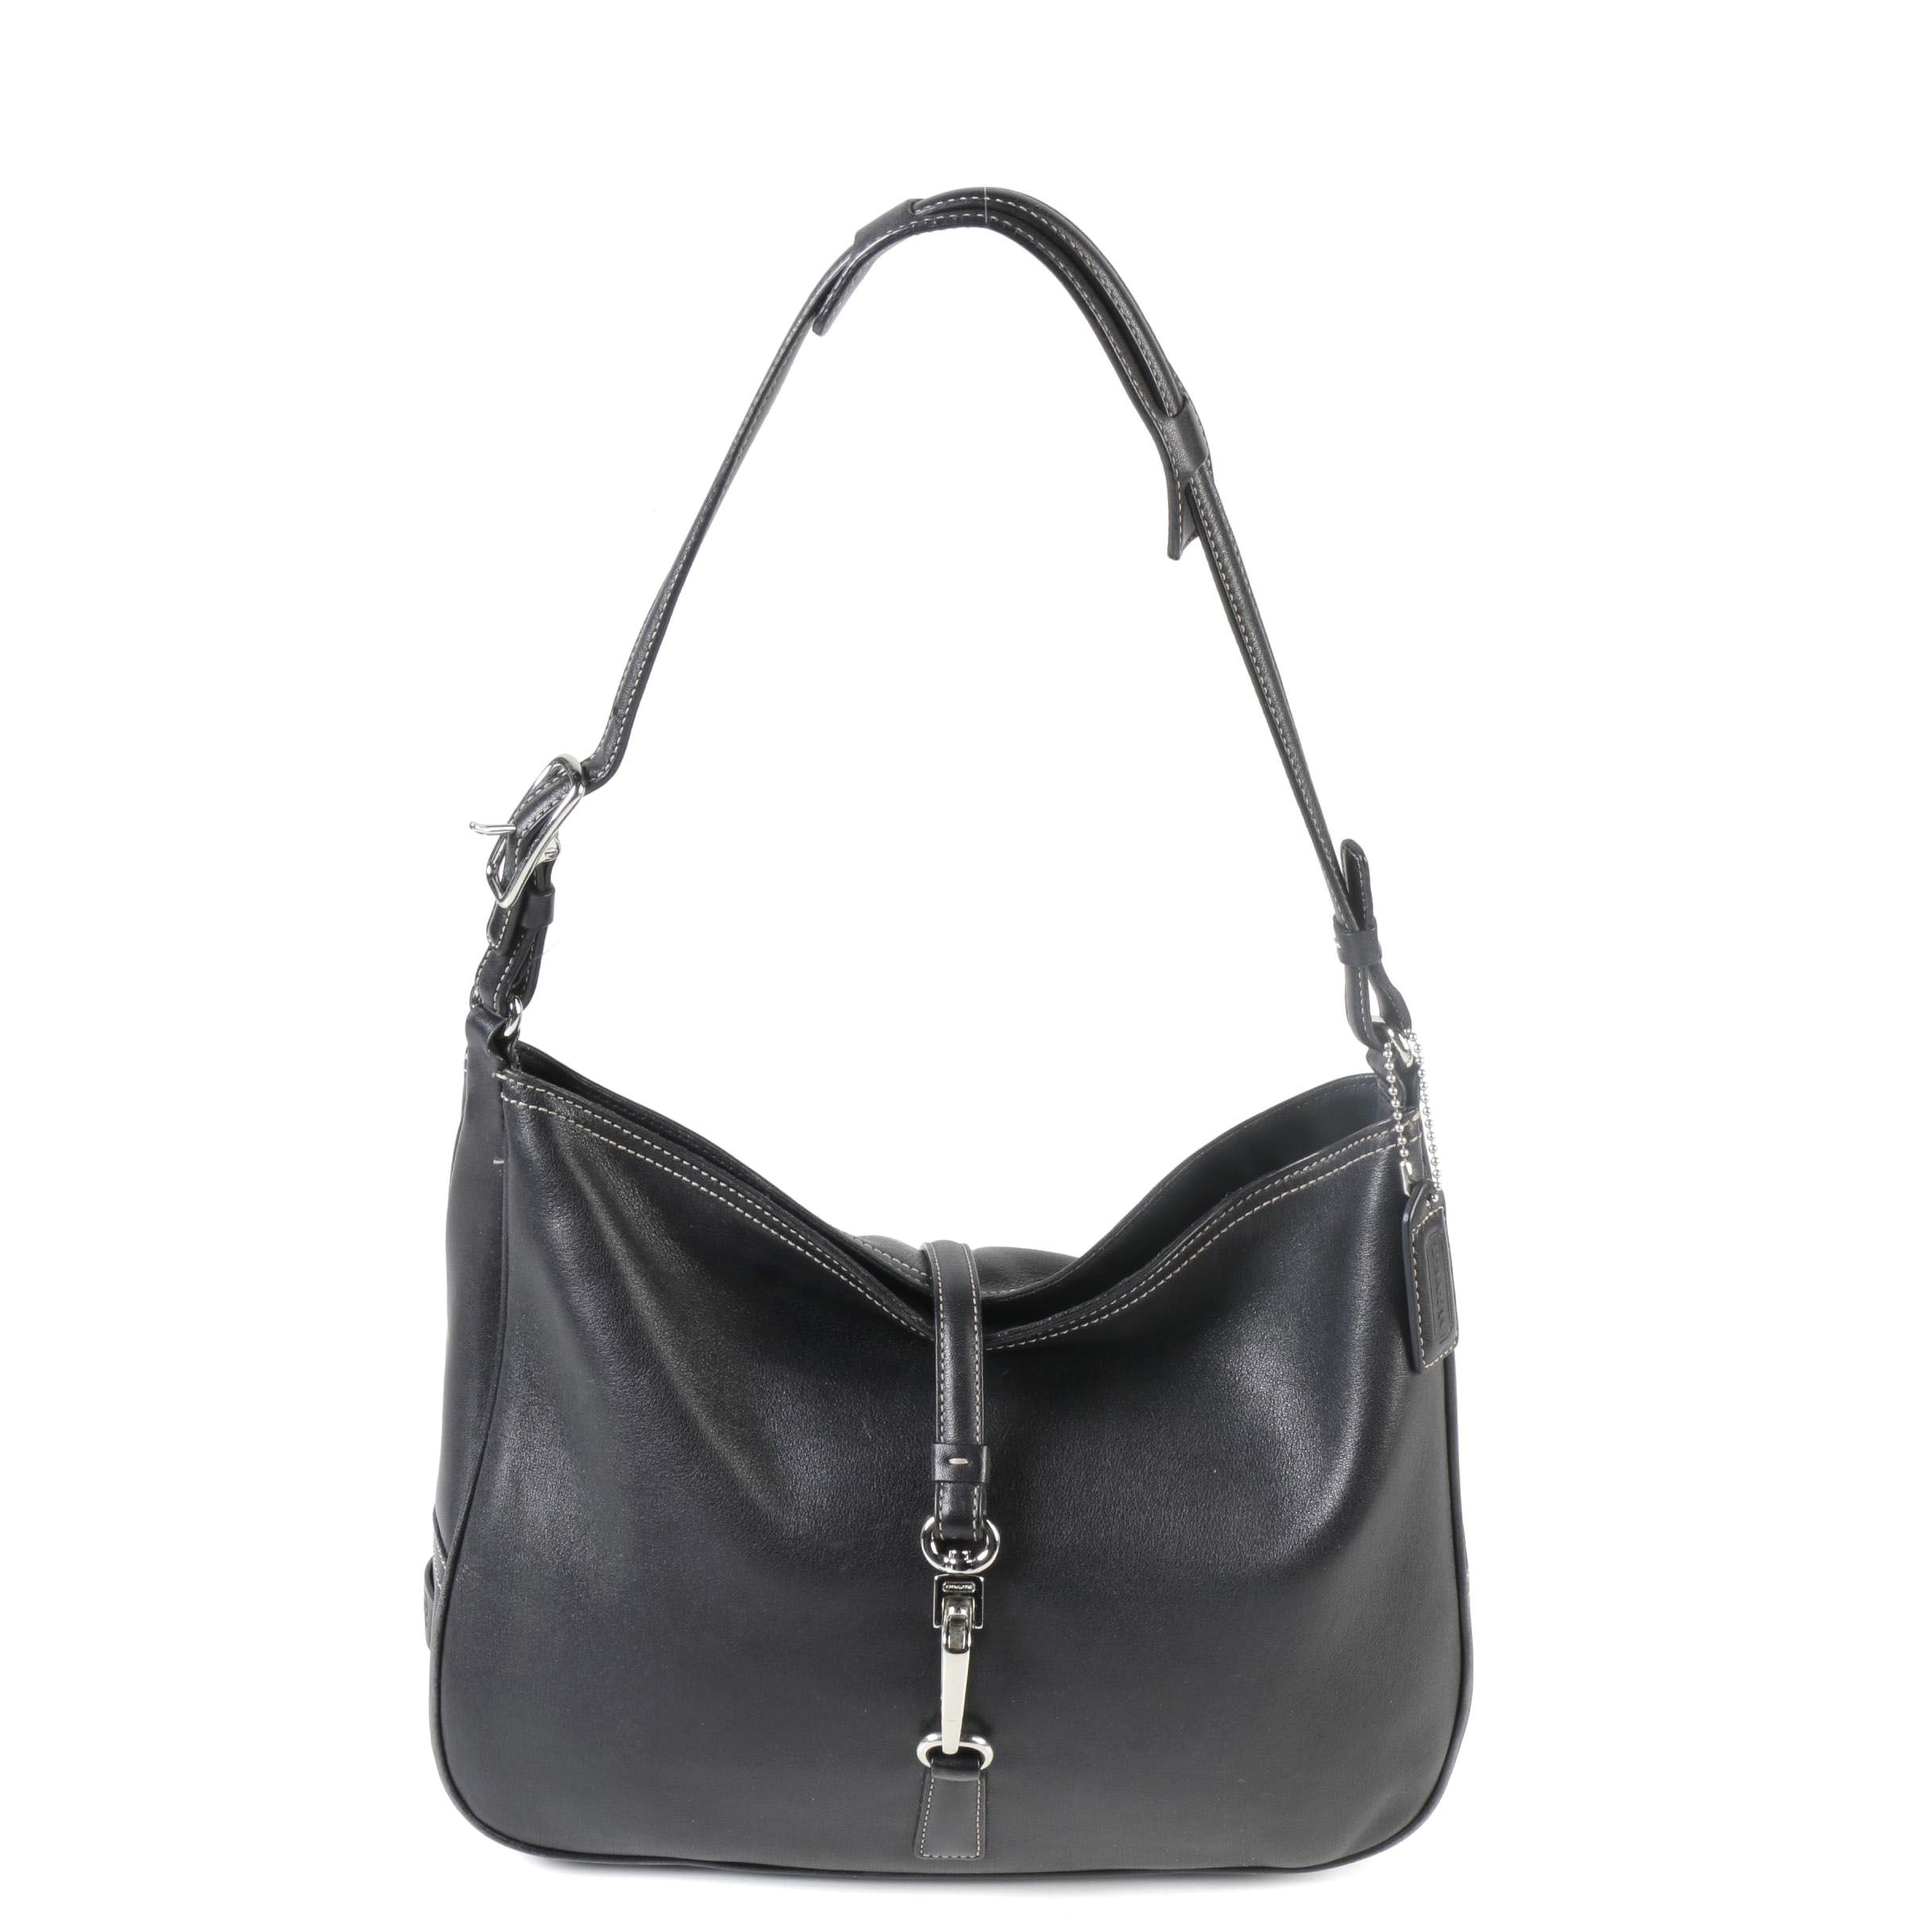 Coach Black Leather Hampton Click Lock Shoulder Bag